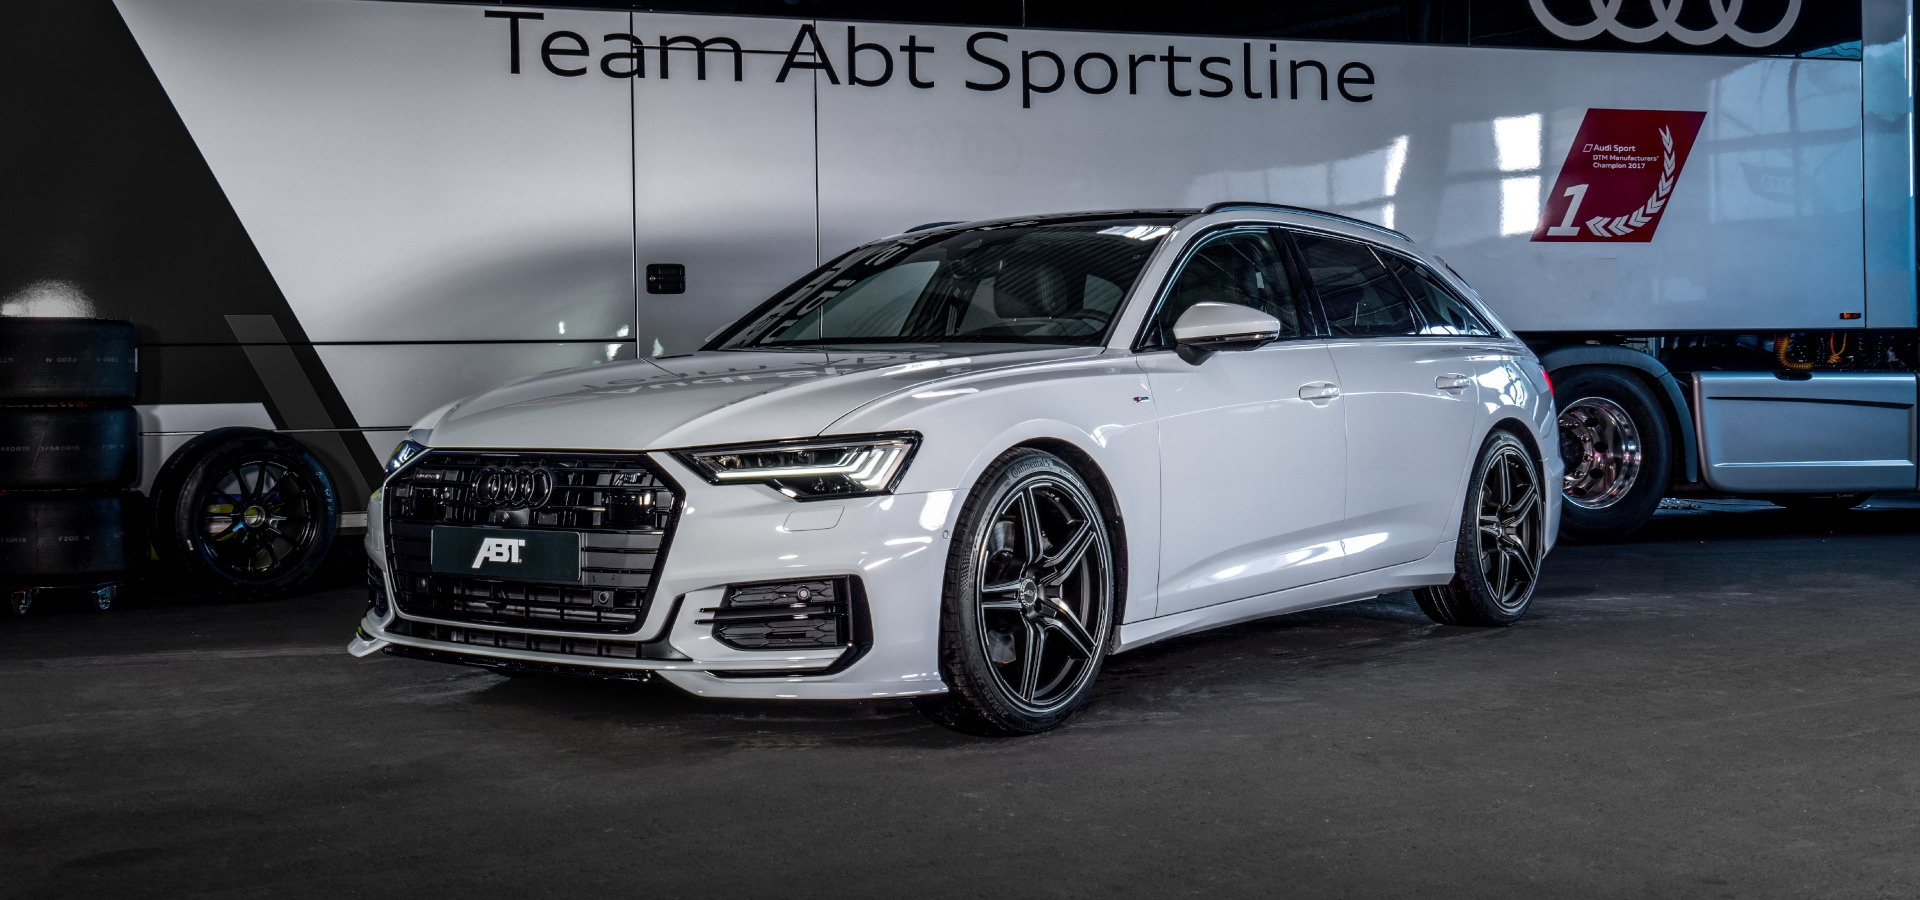 Audi A6 Avant Modified Awesome Audi A6 Abt Sportsline-1983 Of Fresh Audi A6 Avant Modified